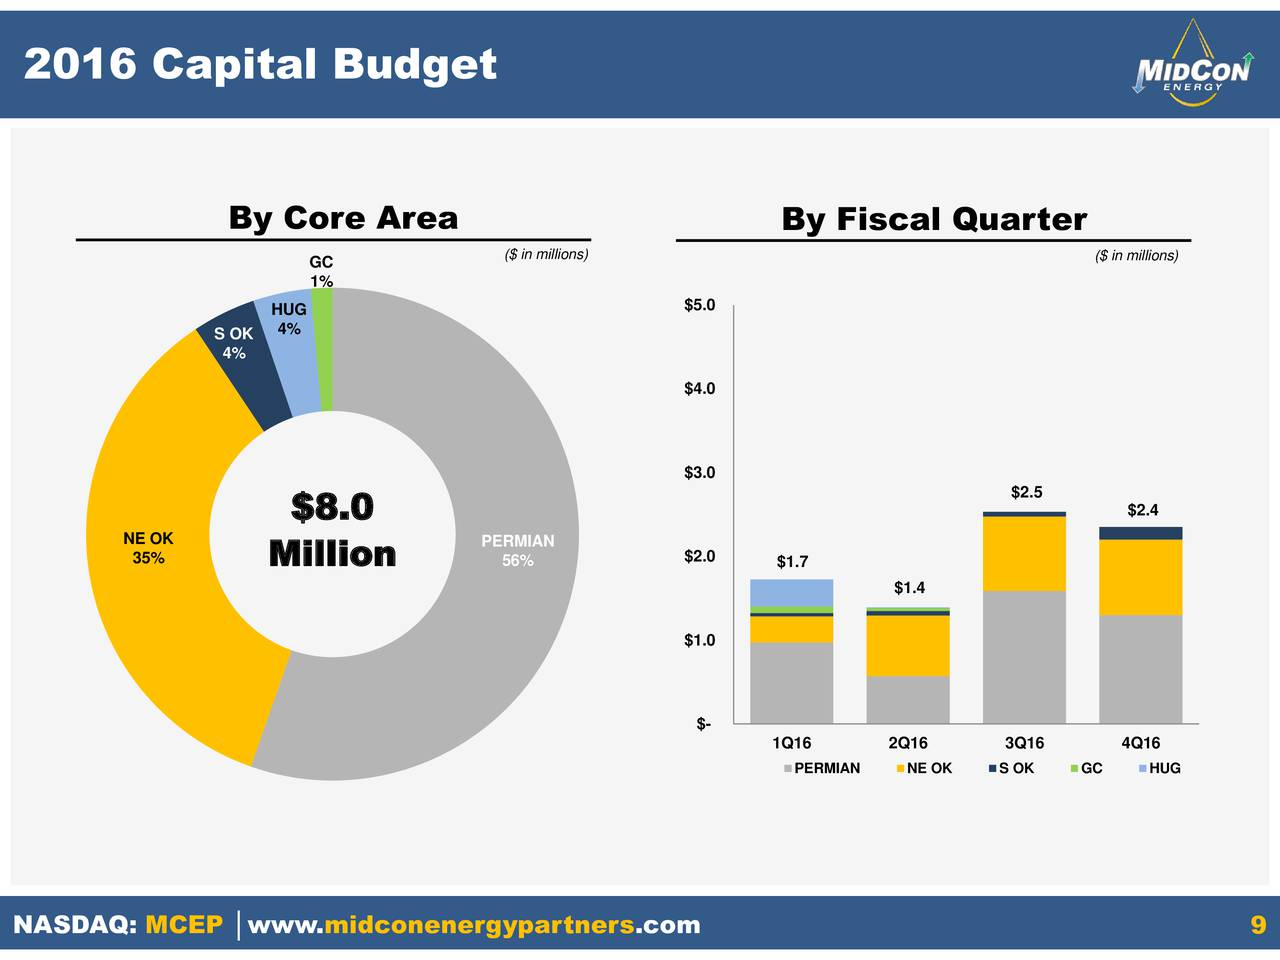 capital budget The state of ohio's biennial capital budget, enacted in each even-numbered year, provides appropriations for the repair, reconstruction and construction of capital assets of state agencies, colleges, universities and school districts in some years, funds may also be allocated for community projects.